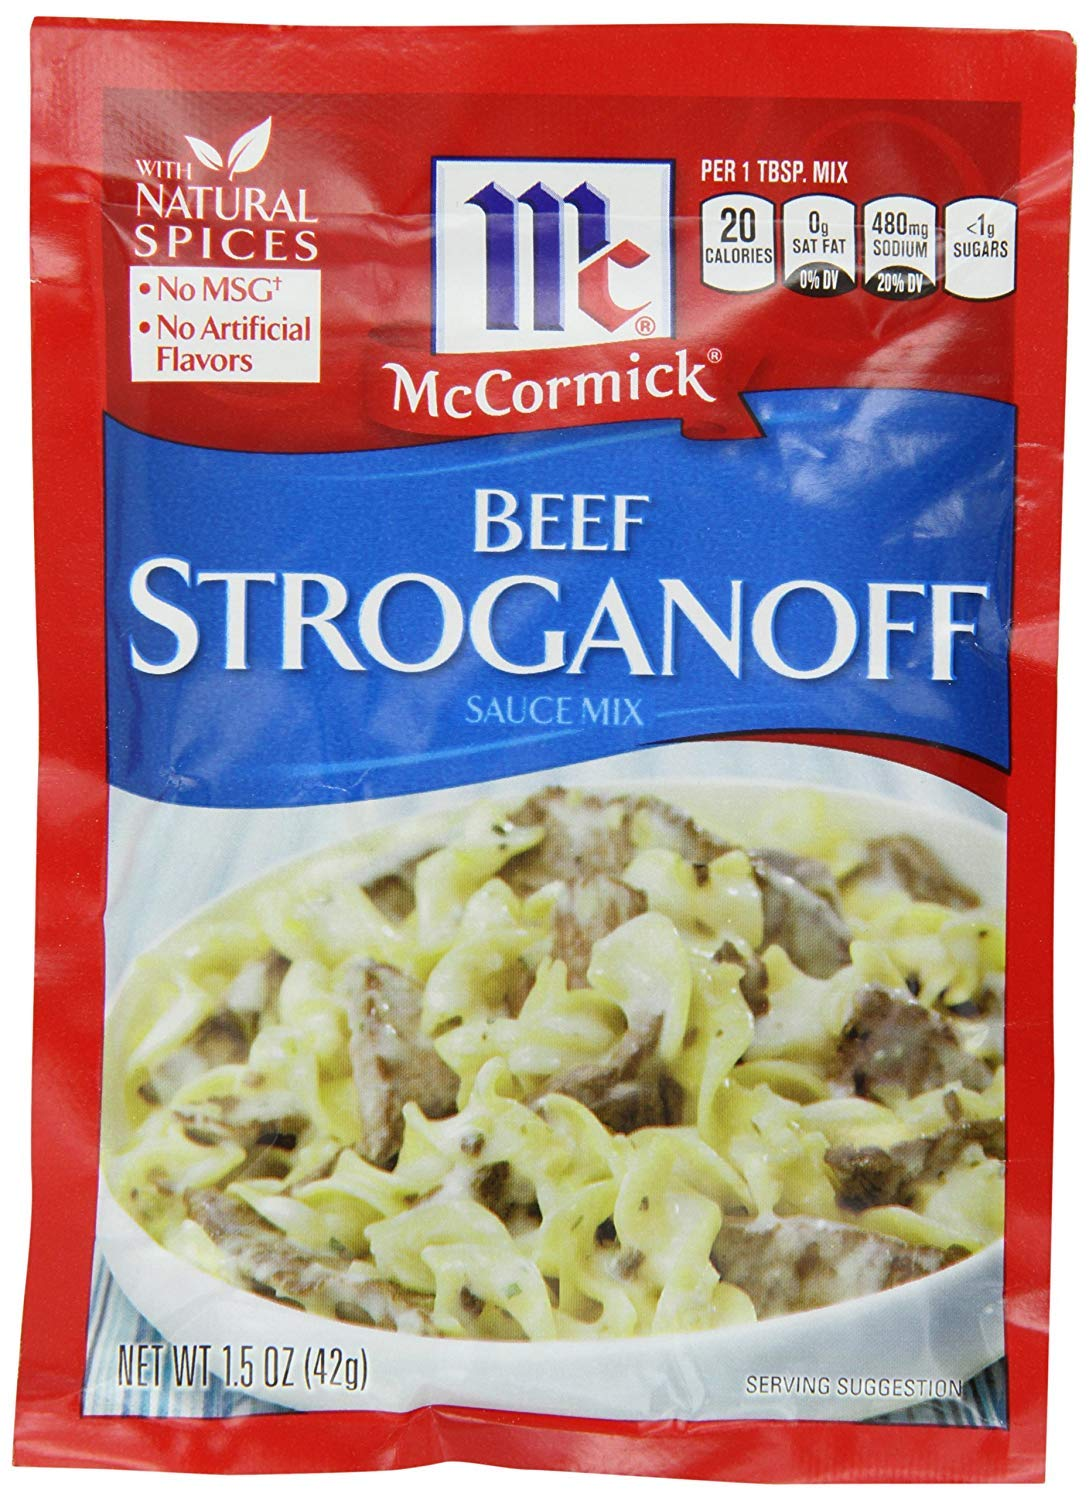 McCormick Beef Stroganoff Sauce Mix (1.5 oz Packets) 4 Pack